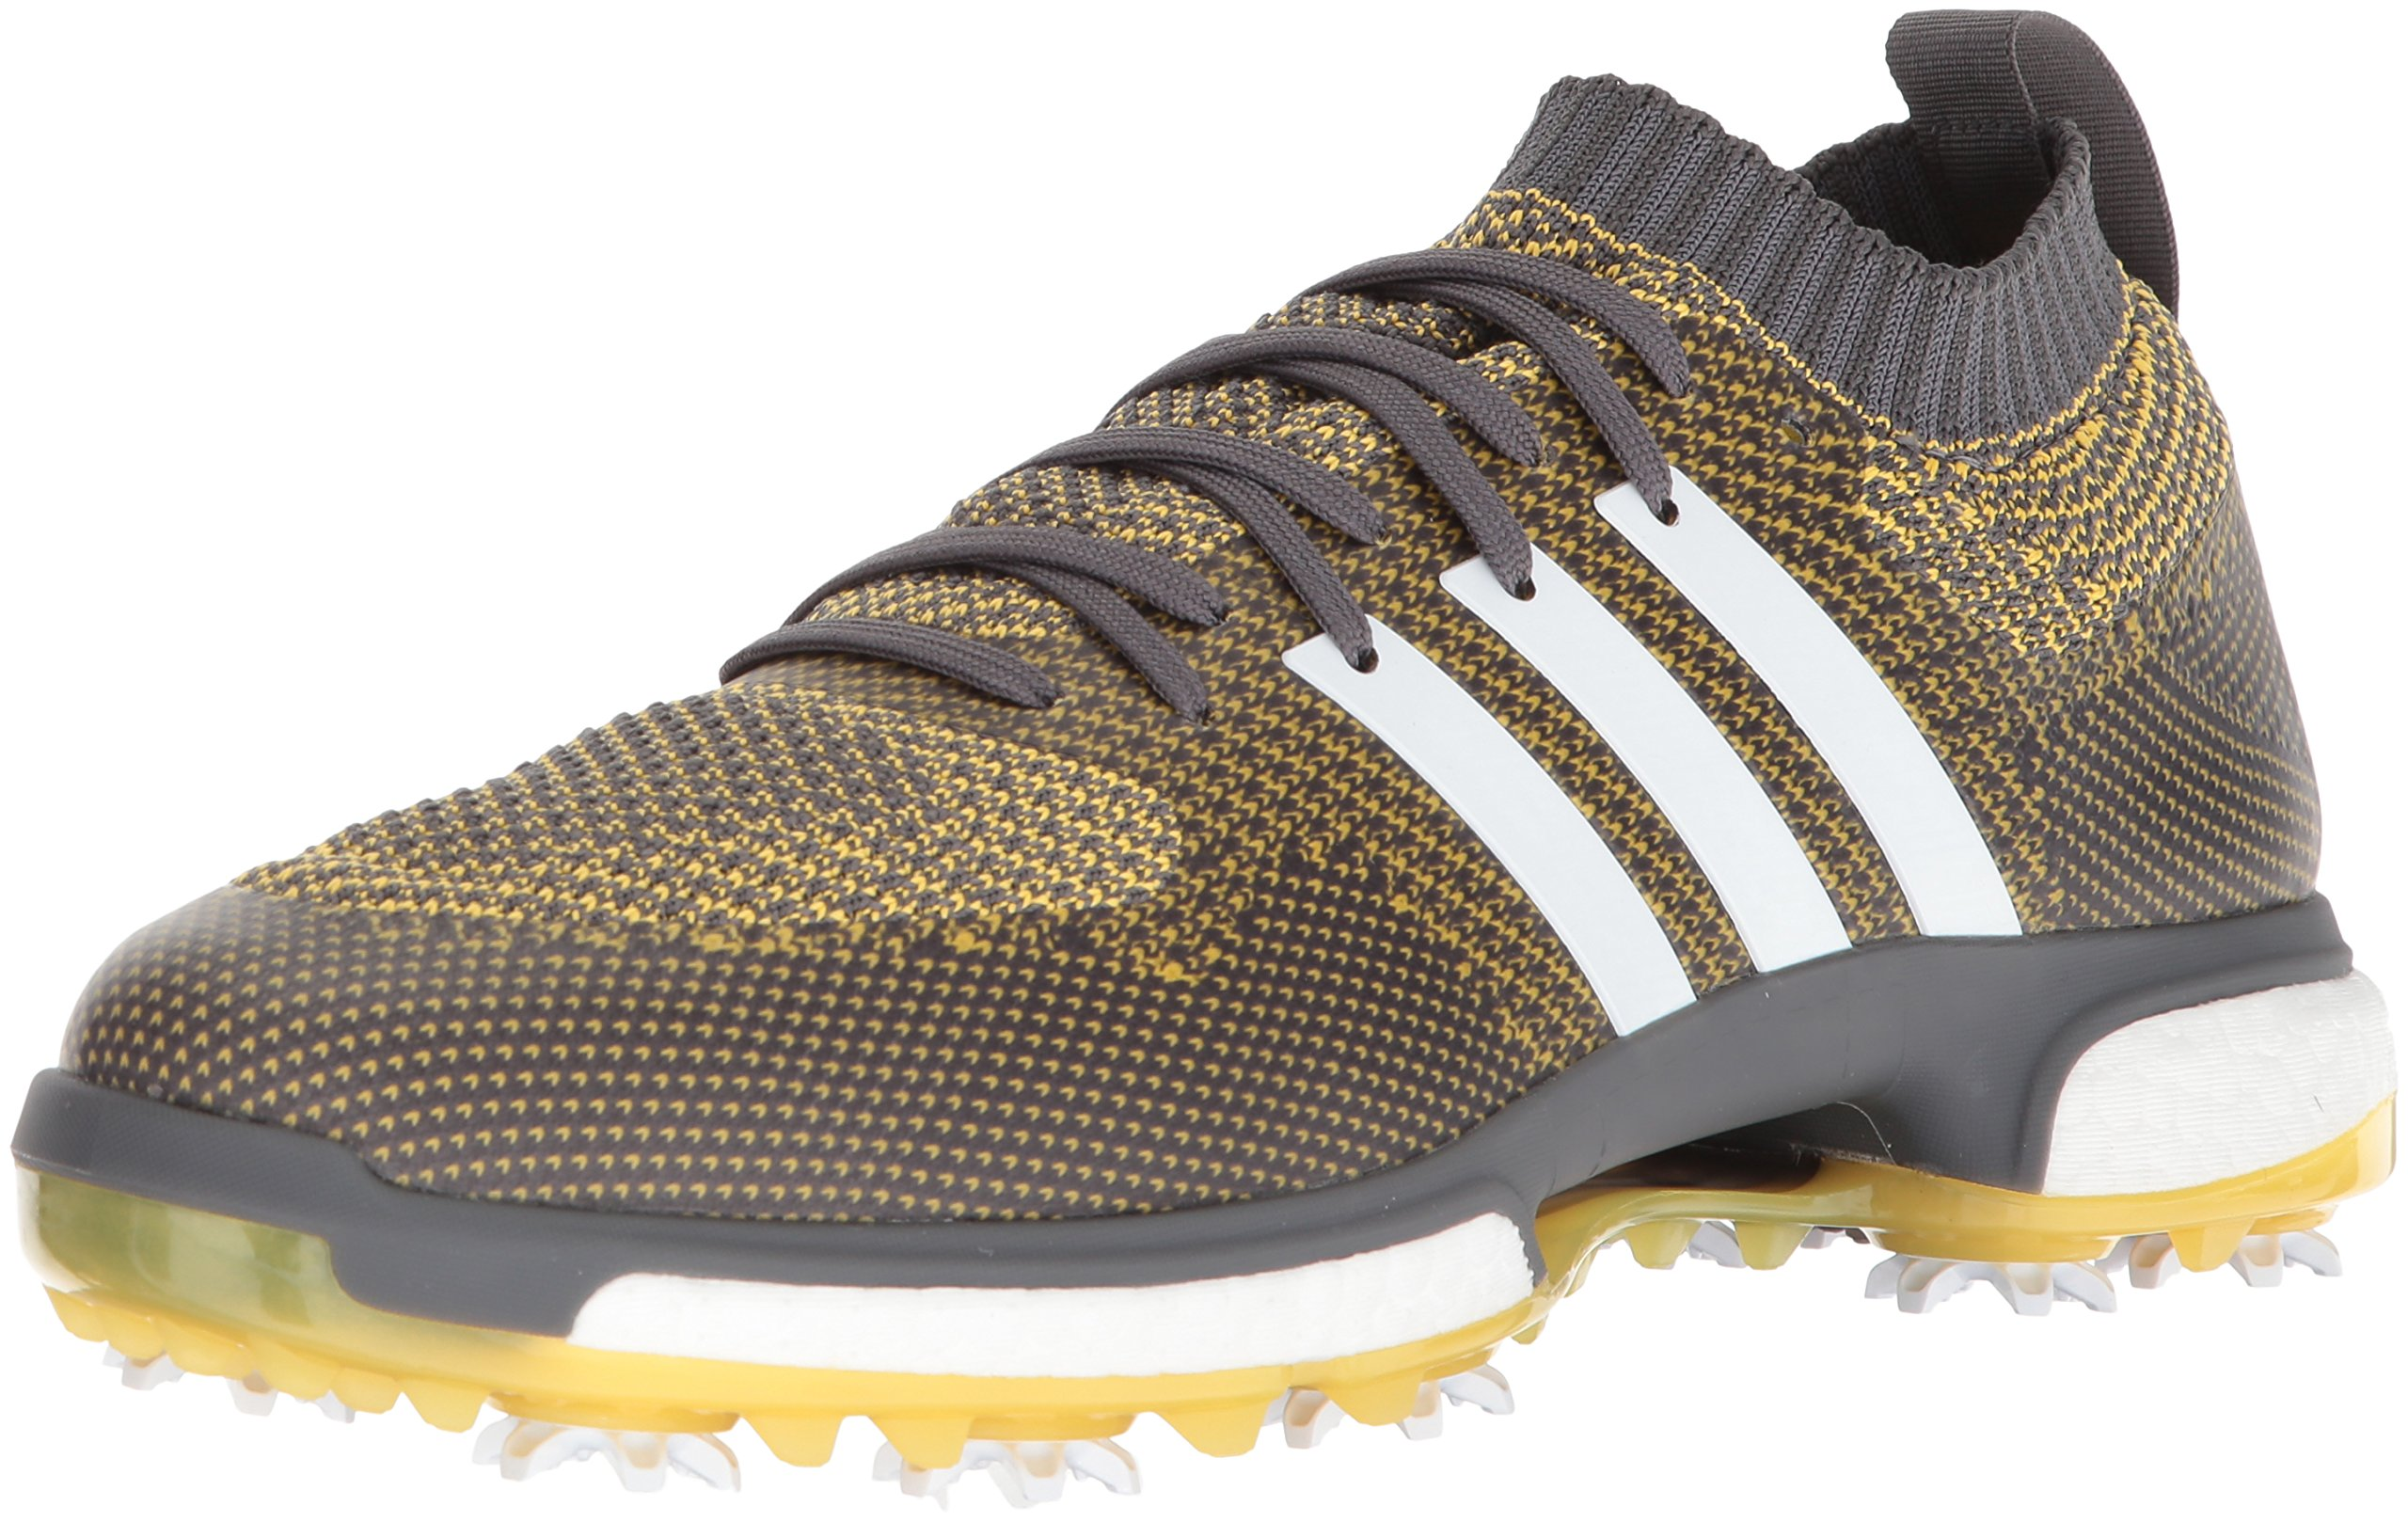 adidas Men's TOUR360 Knit Golf Shoe, Grey Five FTWR White/EQT Yellow, 13 Medium US by adidas